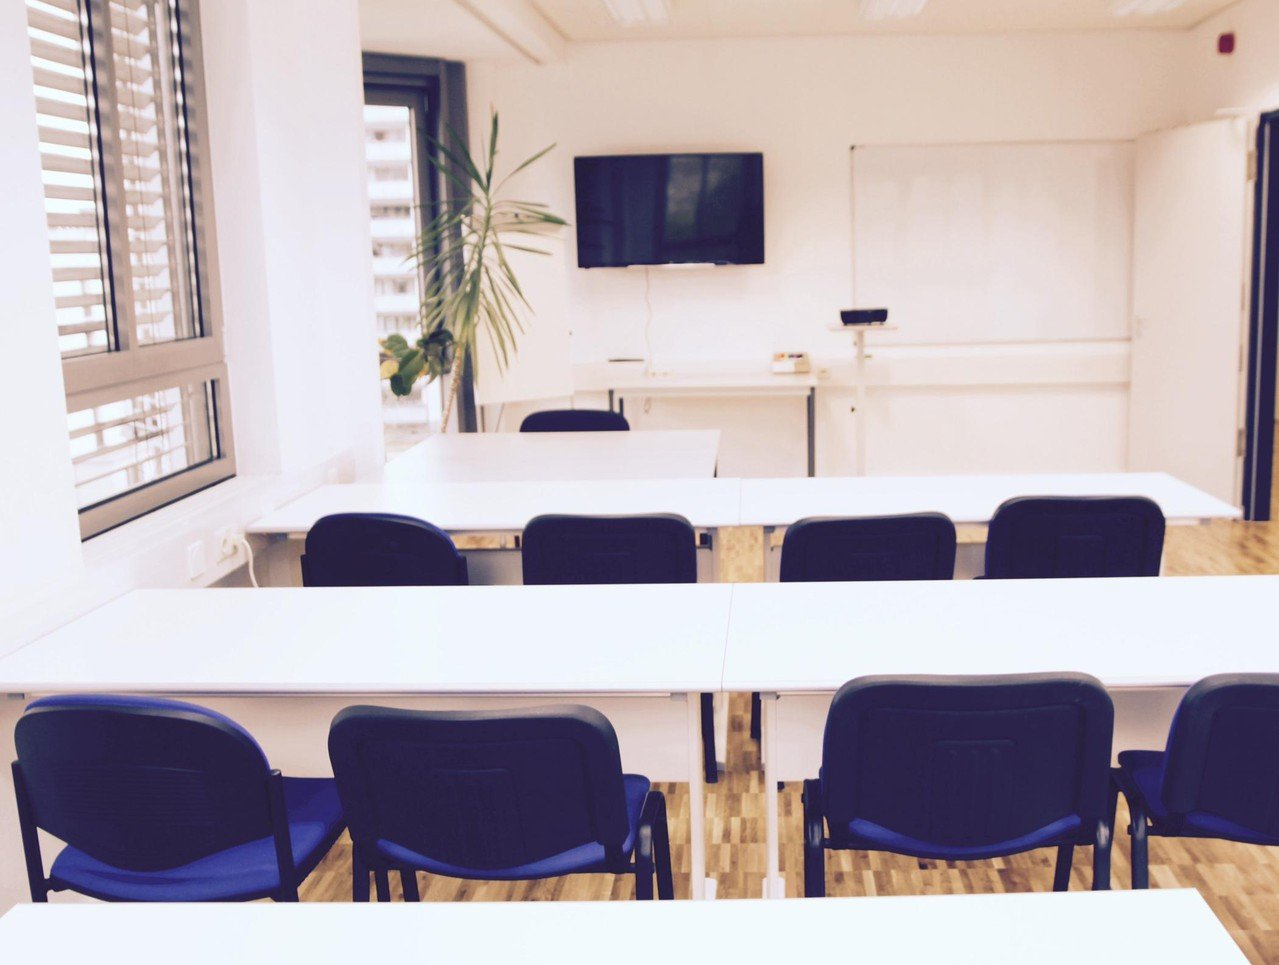 Dresden seminar rooms Classroom meeting space image 0